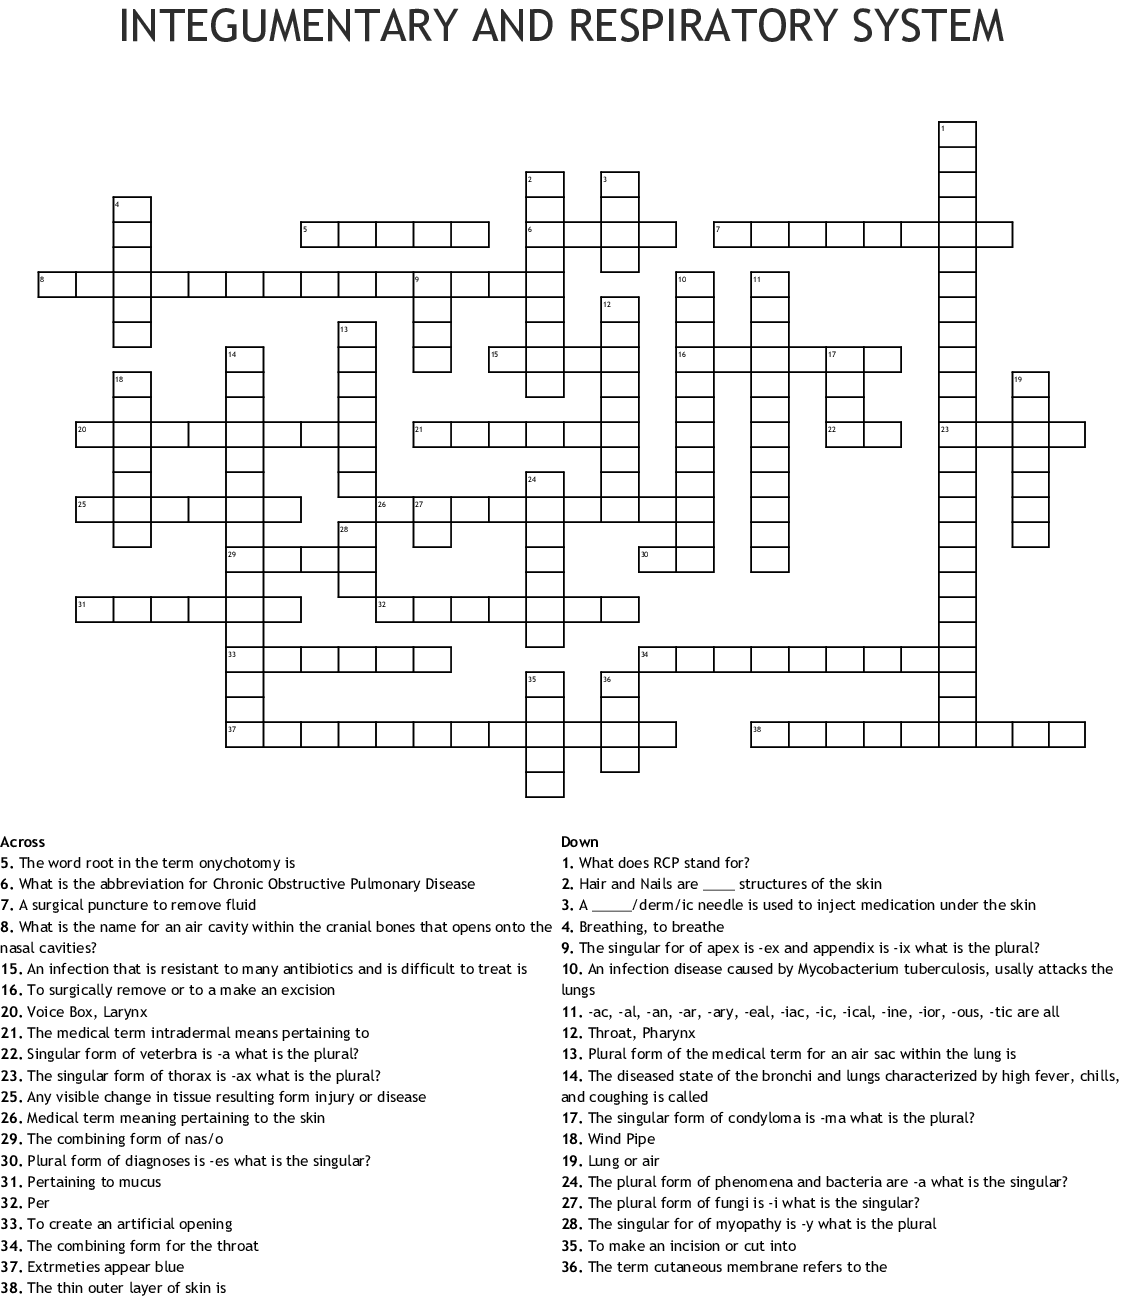 Integumentary And Respiratory System Crossword